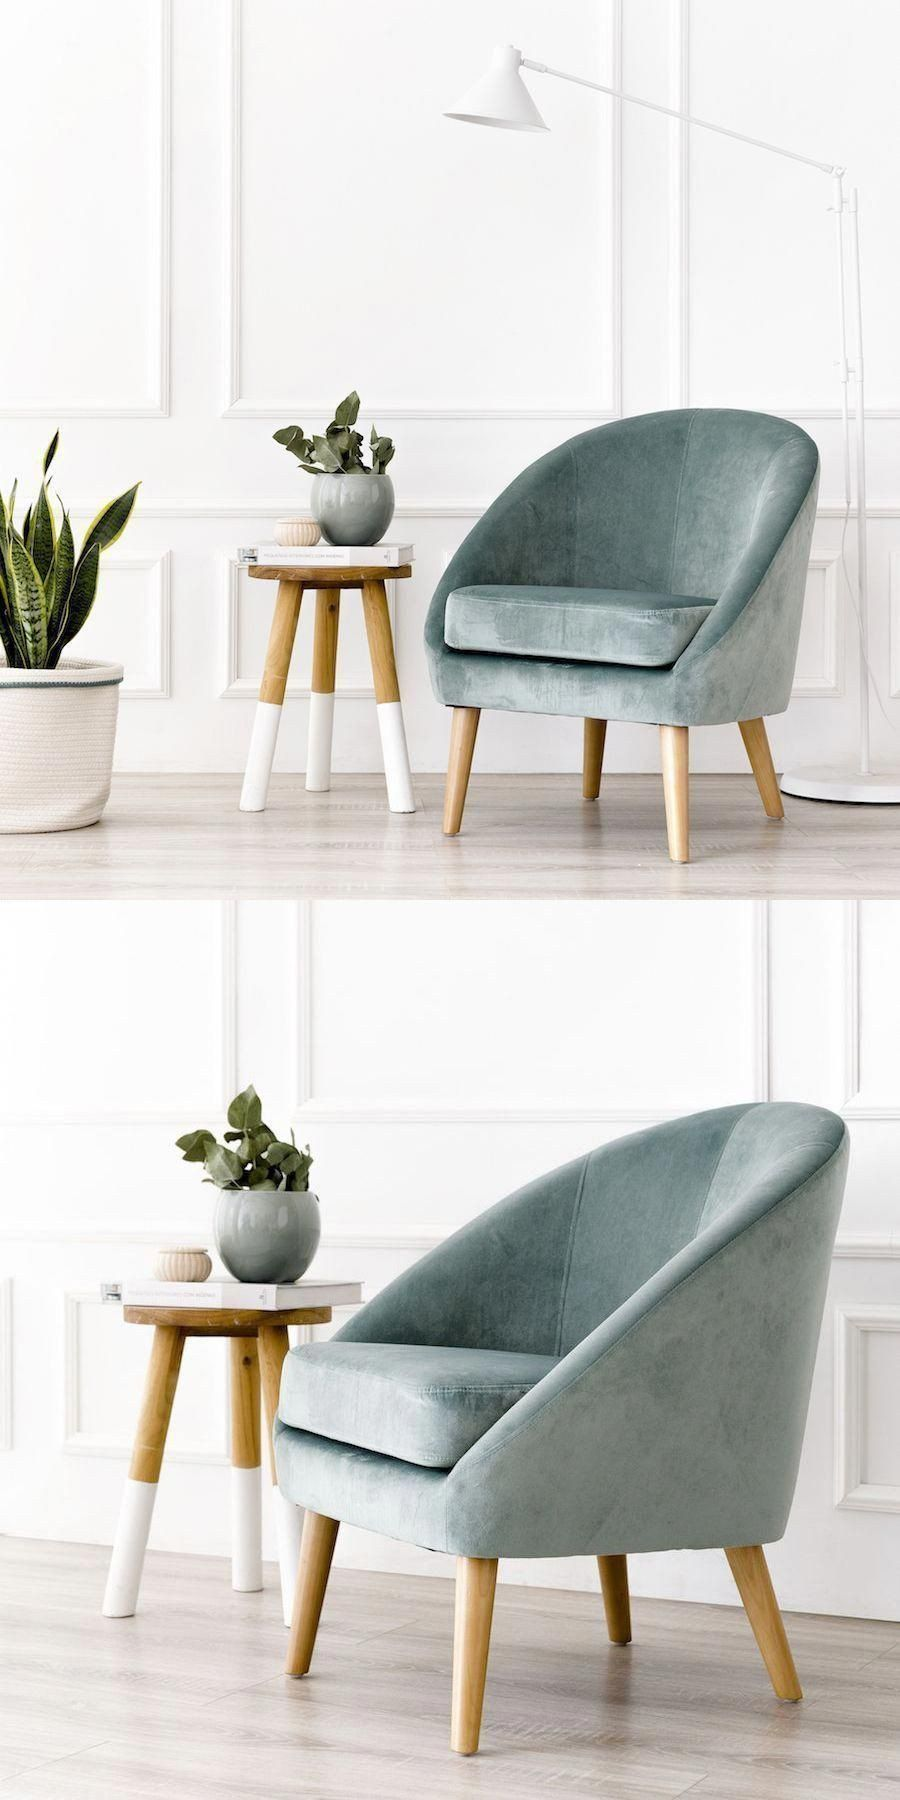 Accent Chairs For Bedroom Accent Chair Bedroom Livingroom Layout Bedroom Sofa Small 2020 가구 인테리어 제품 디자인